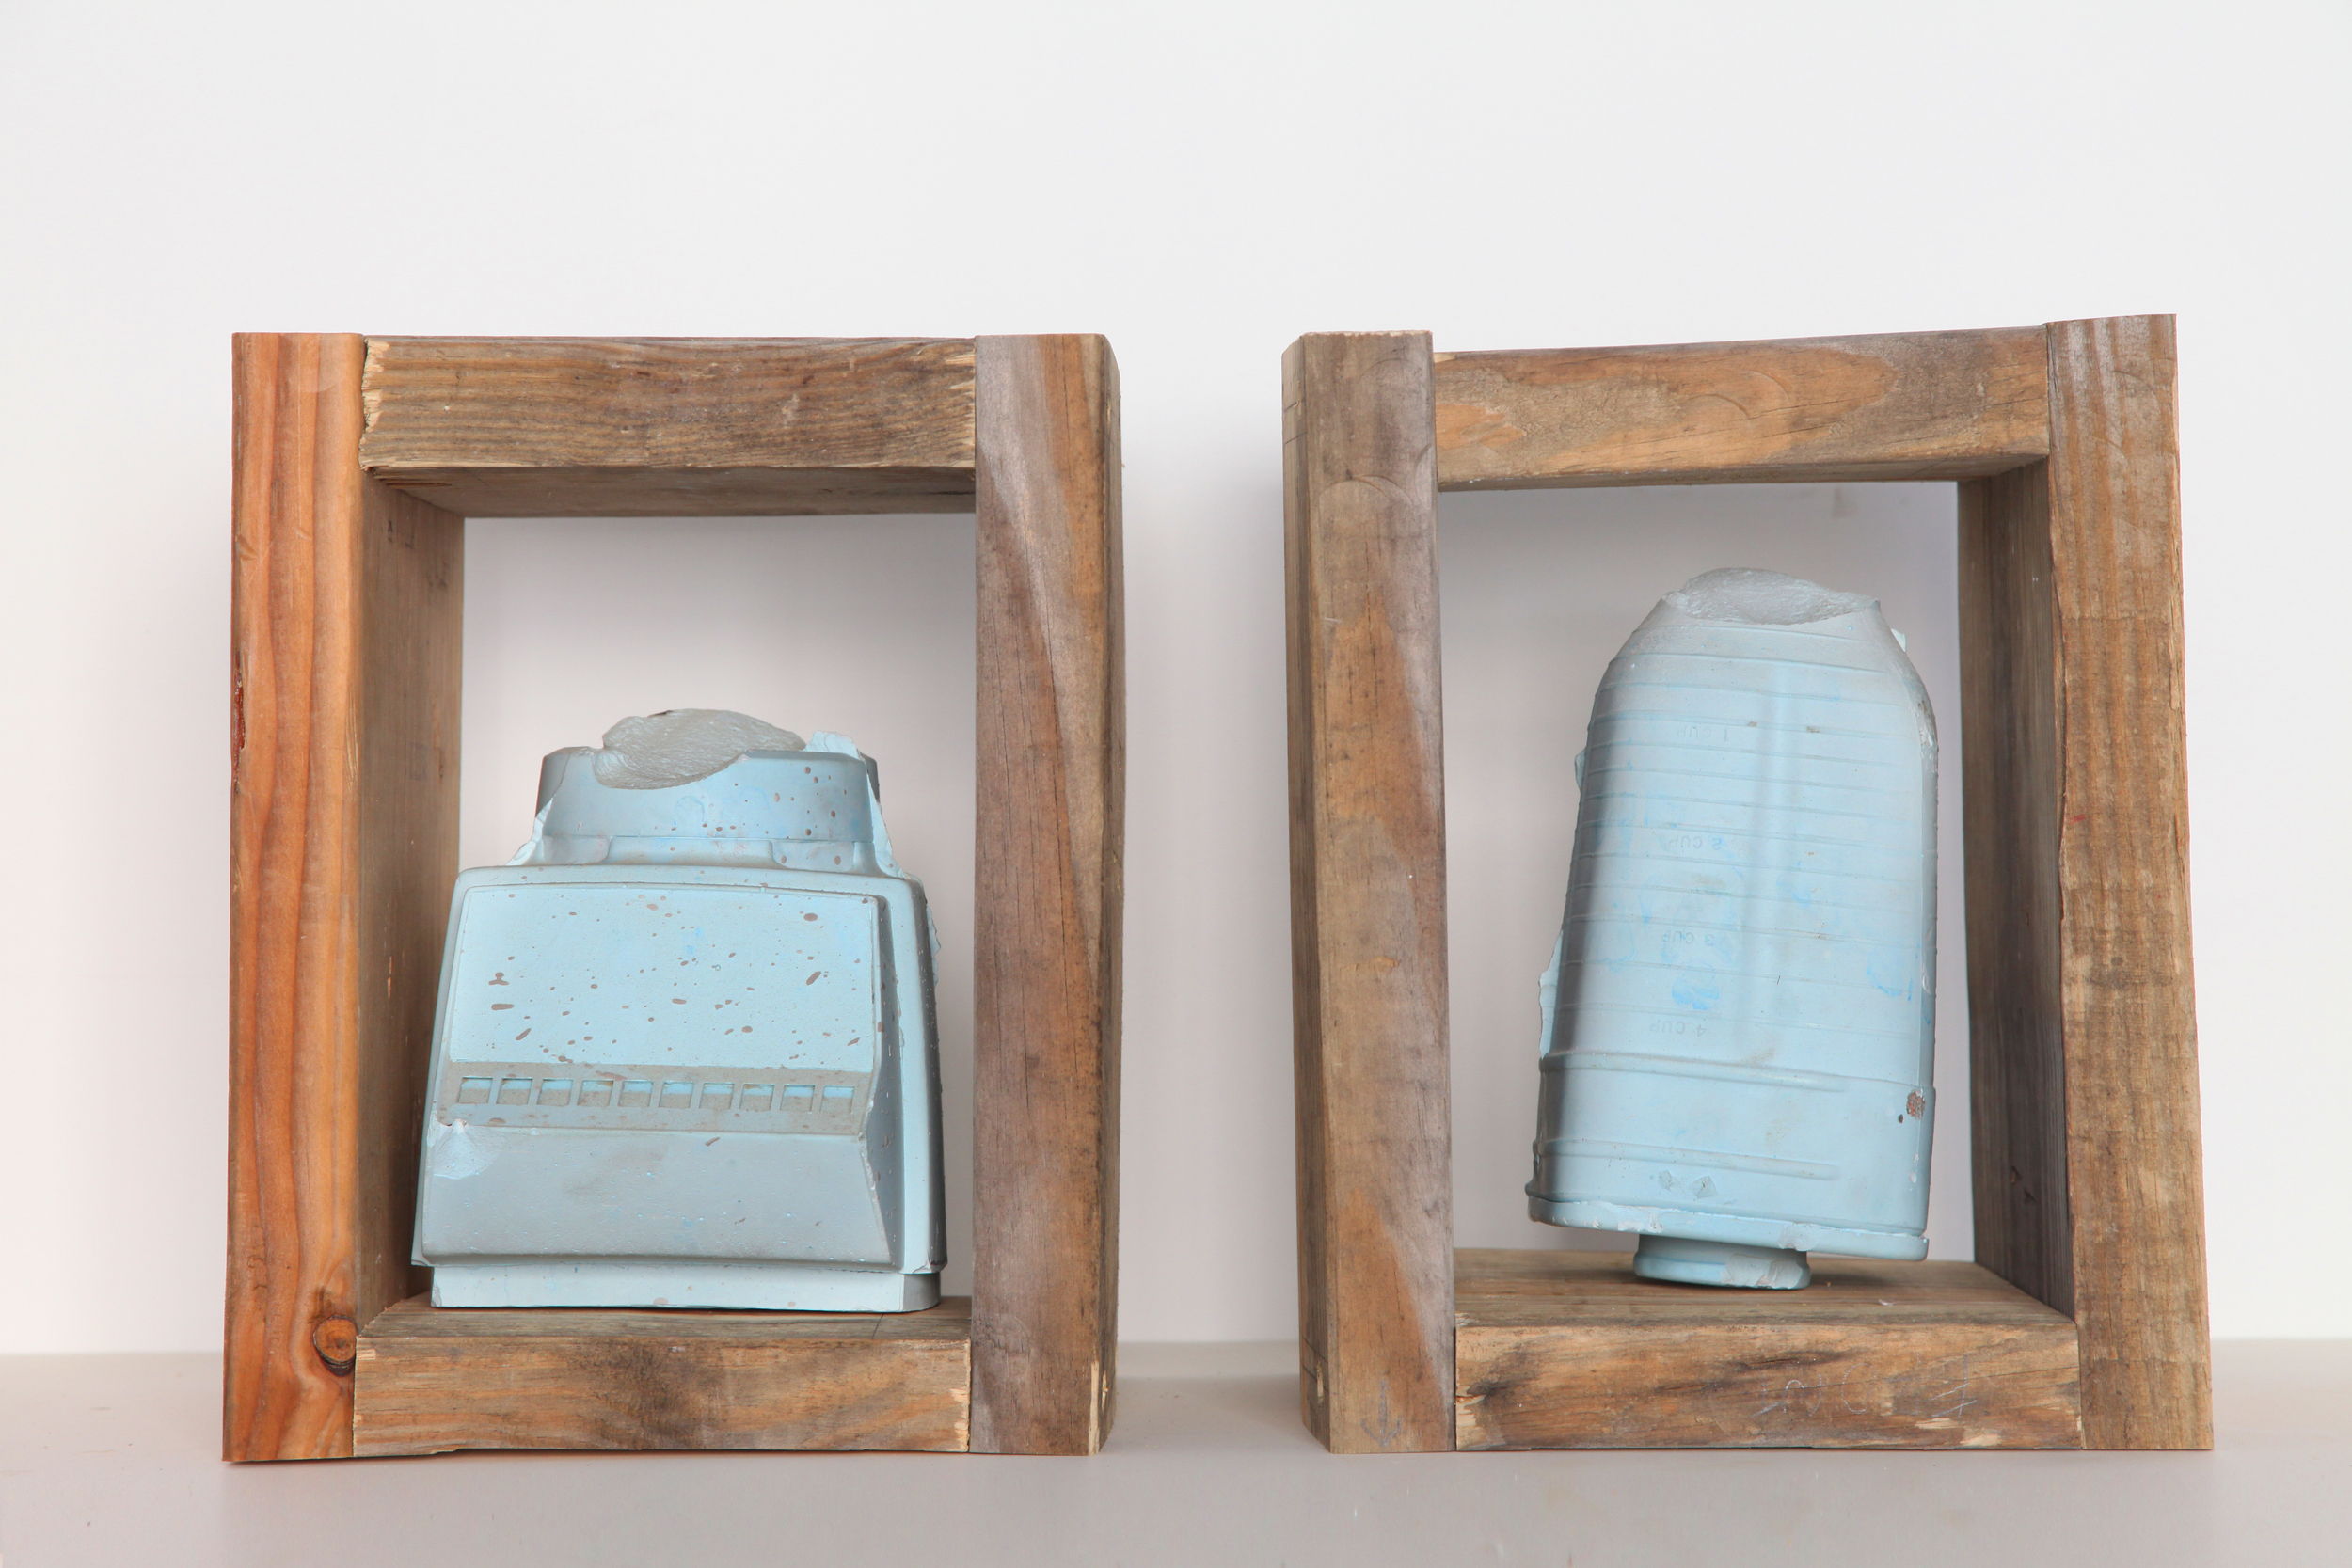 Blender Diptych, 2013 wood, plaster, pigment 18 x 9 x 13 in